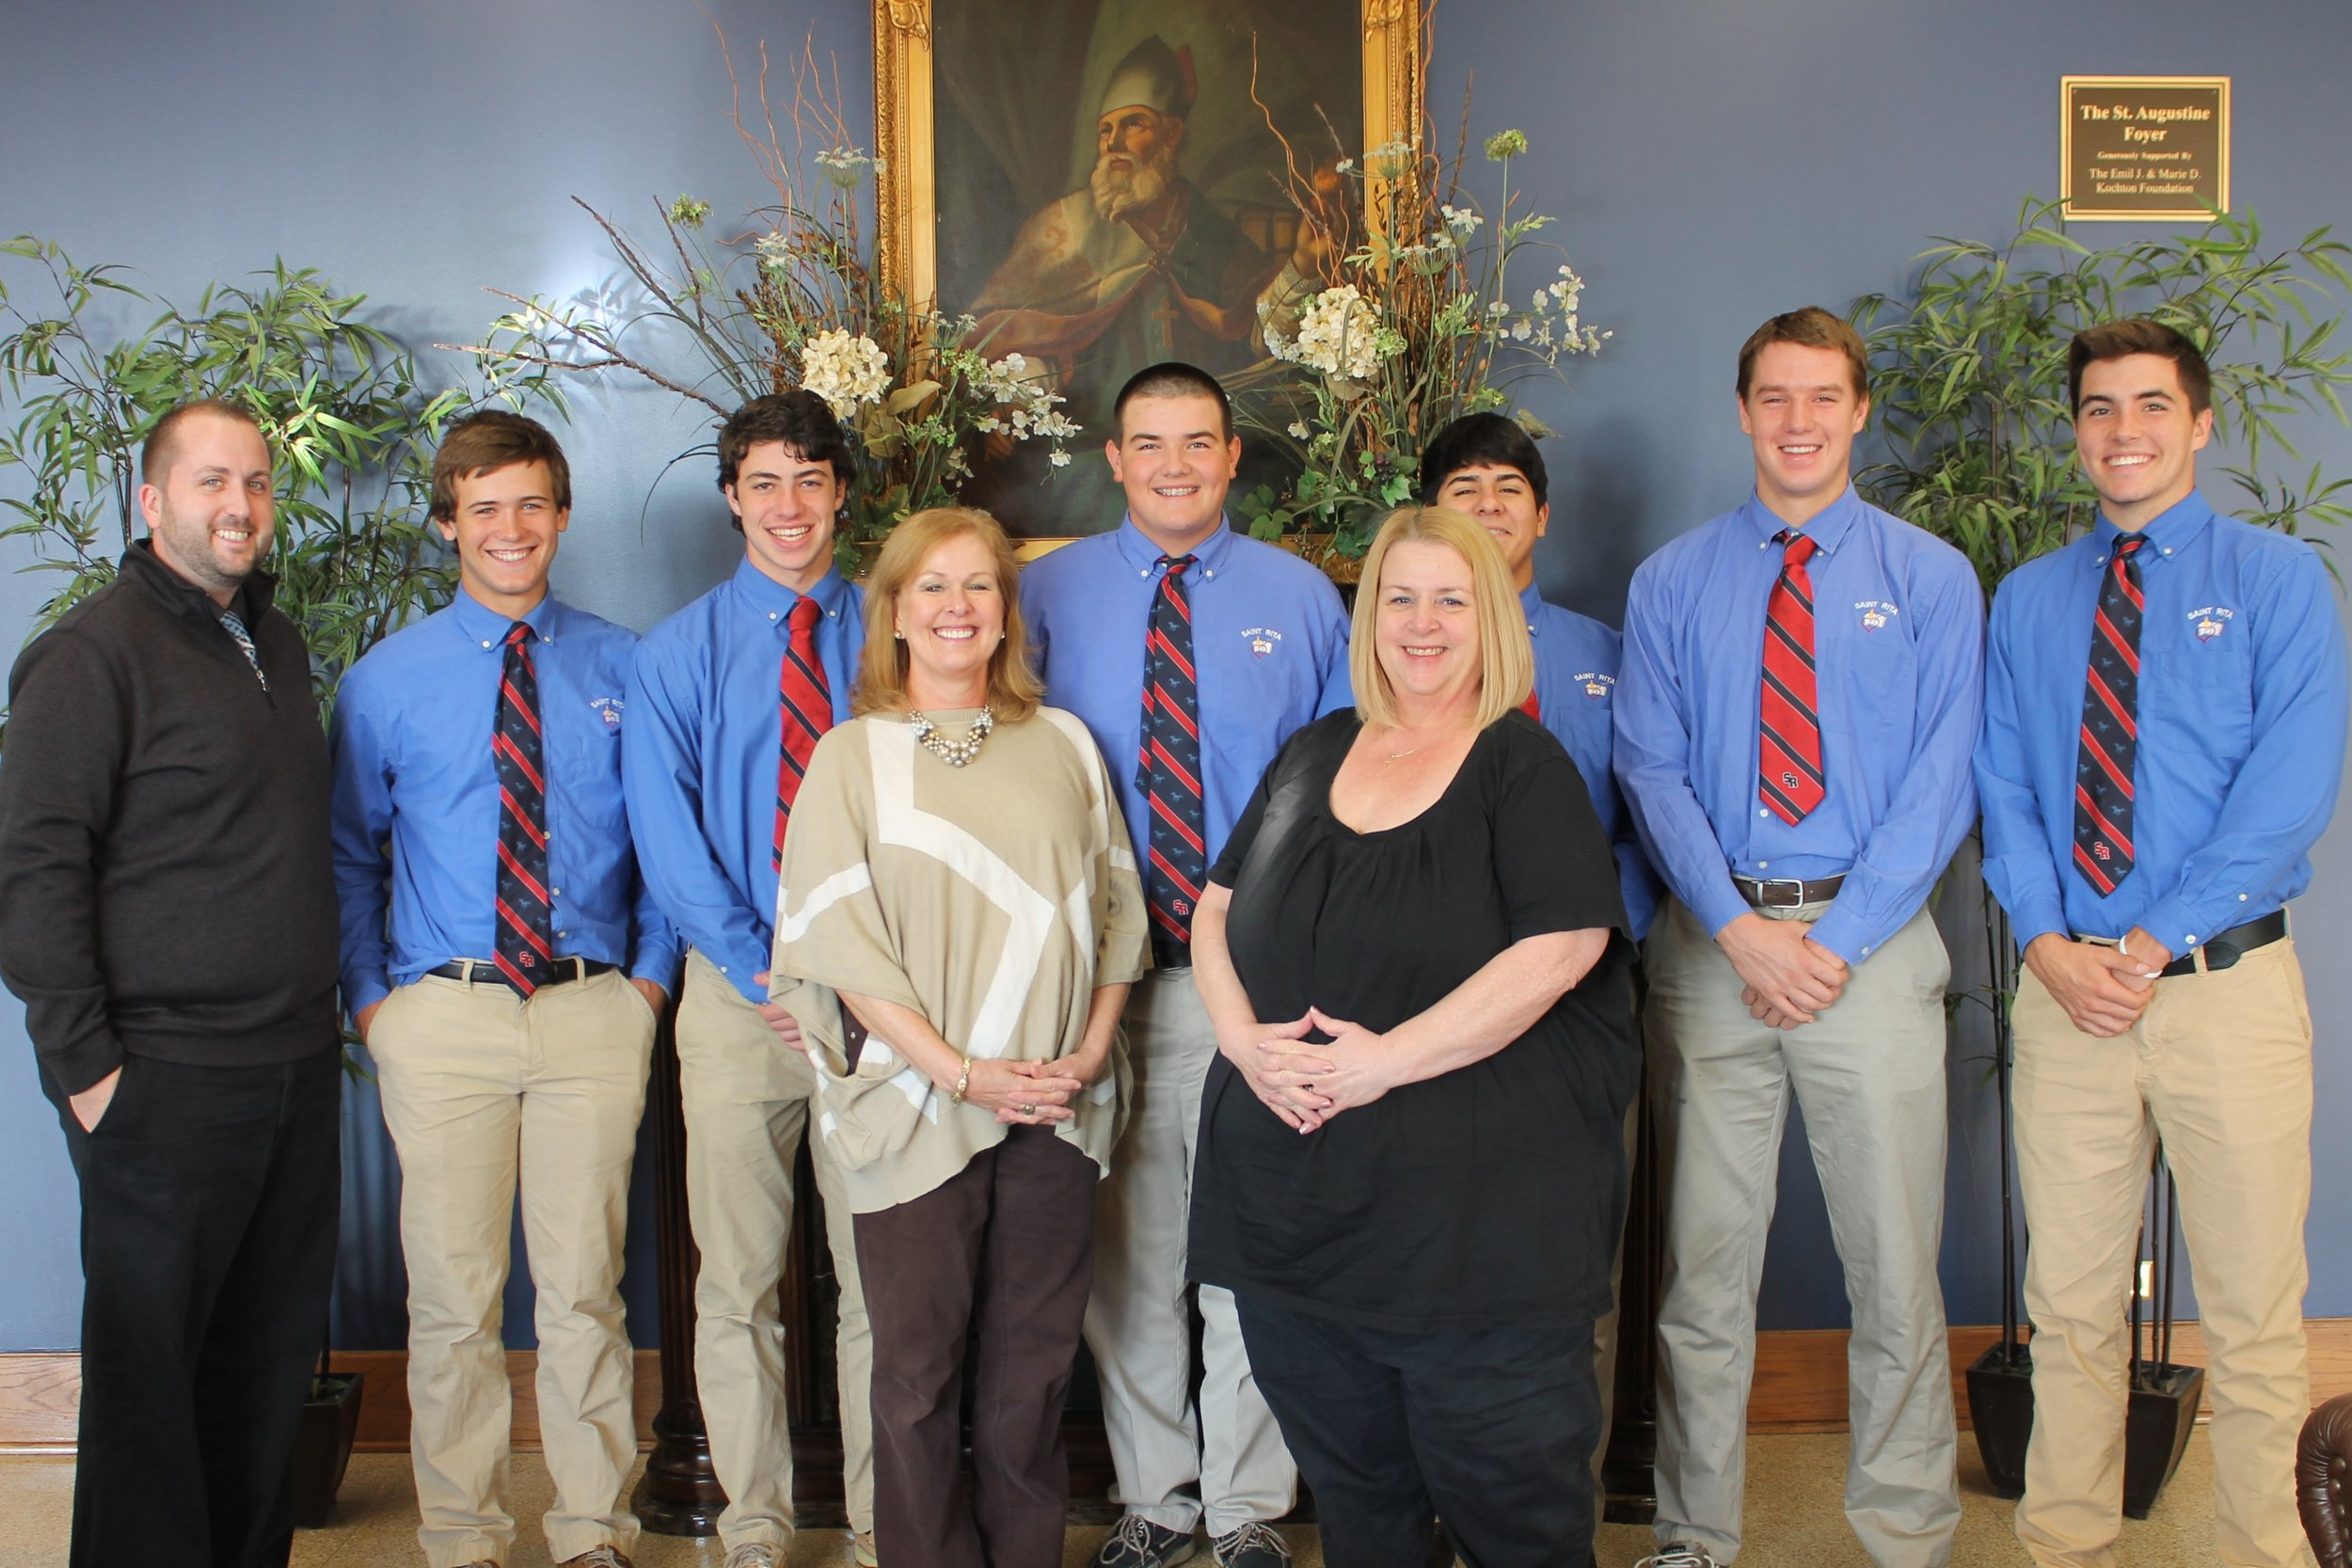 Pictured the Class of 2017 St. Rita of Cascia High School Student Government Officers (L to R):Mr. Josh Blaszak '02, Sean Macander, Joey Henze, Bobby Gikas, Nick Durham, Tim Zaleski and Connor Kelly.